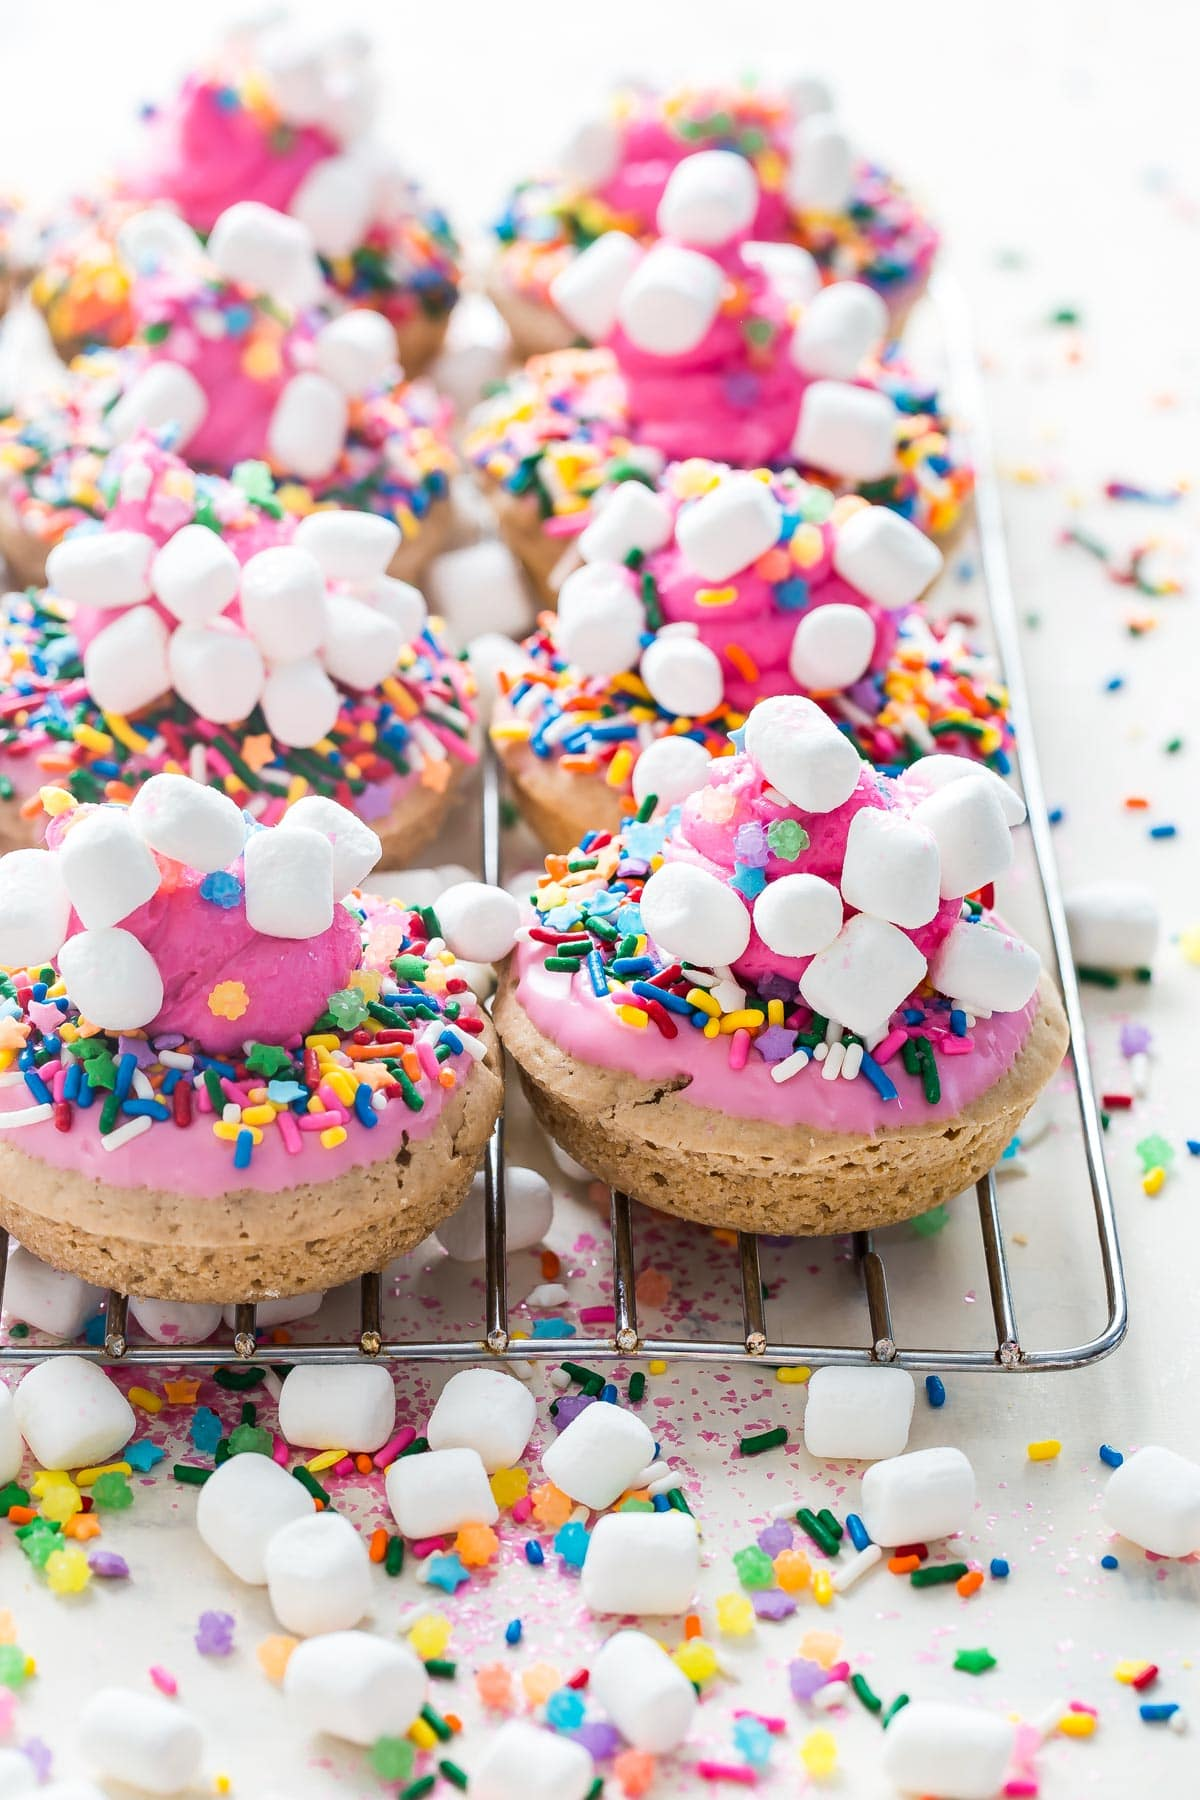 Baked Strawberry Donuts covered in an absurd amount of unicorn sprinkles and mini marshmallows!